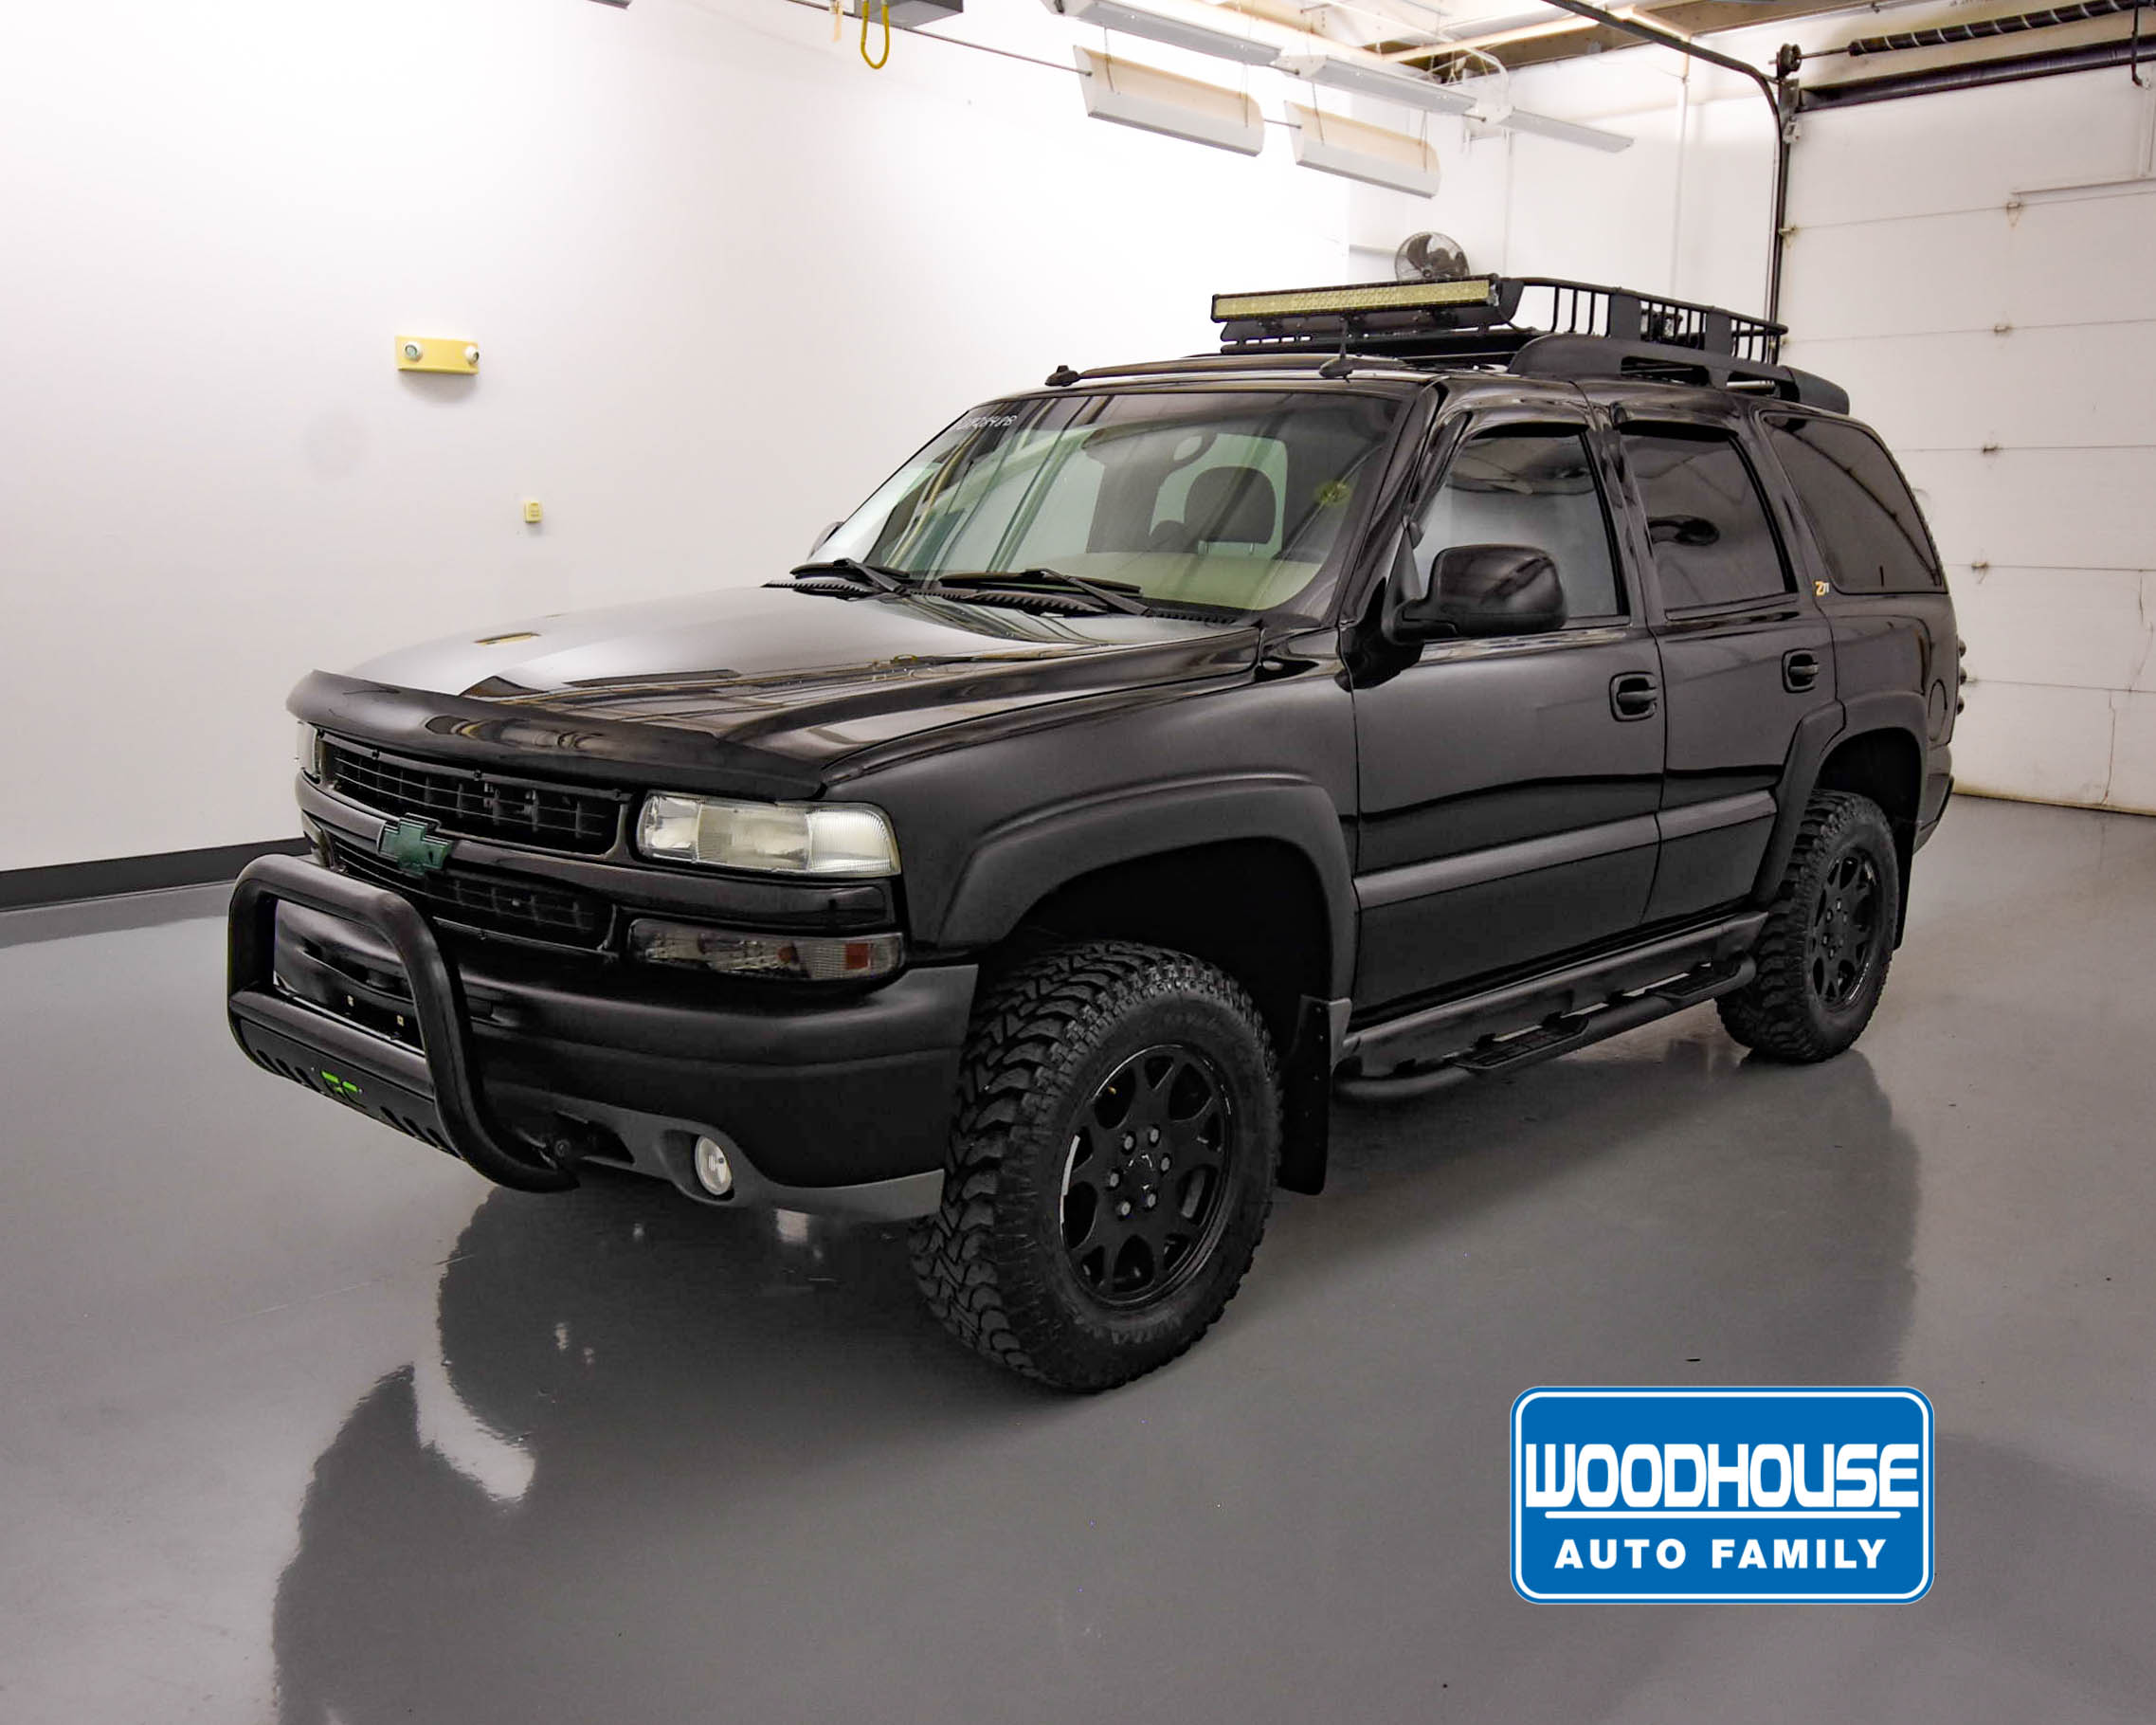 Woodhouse Used 2003 Chevrolet Tahoe For Sale Chrysler Dodge Jeep